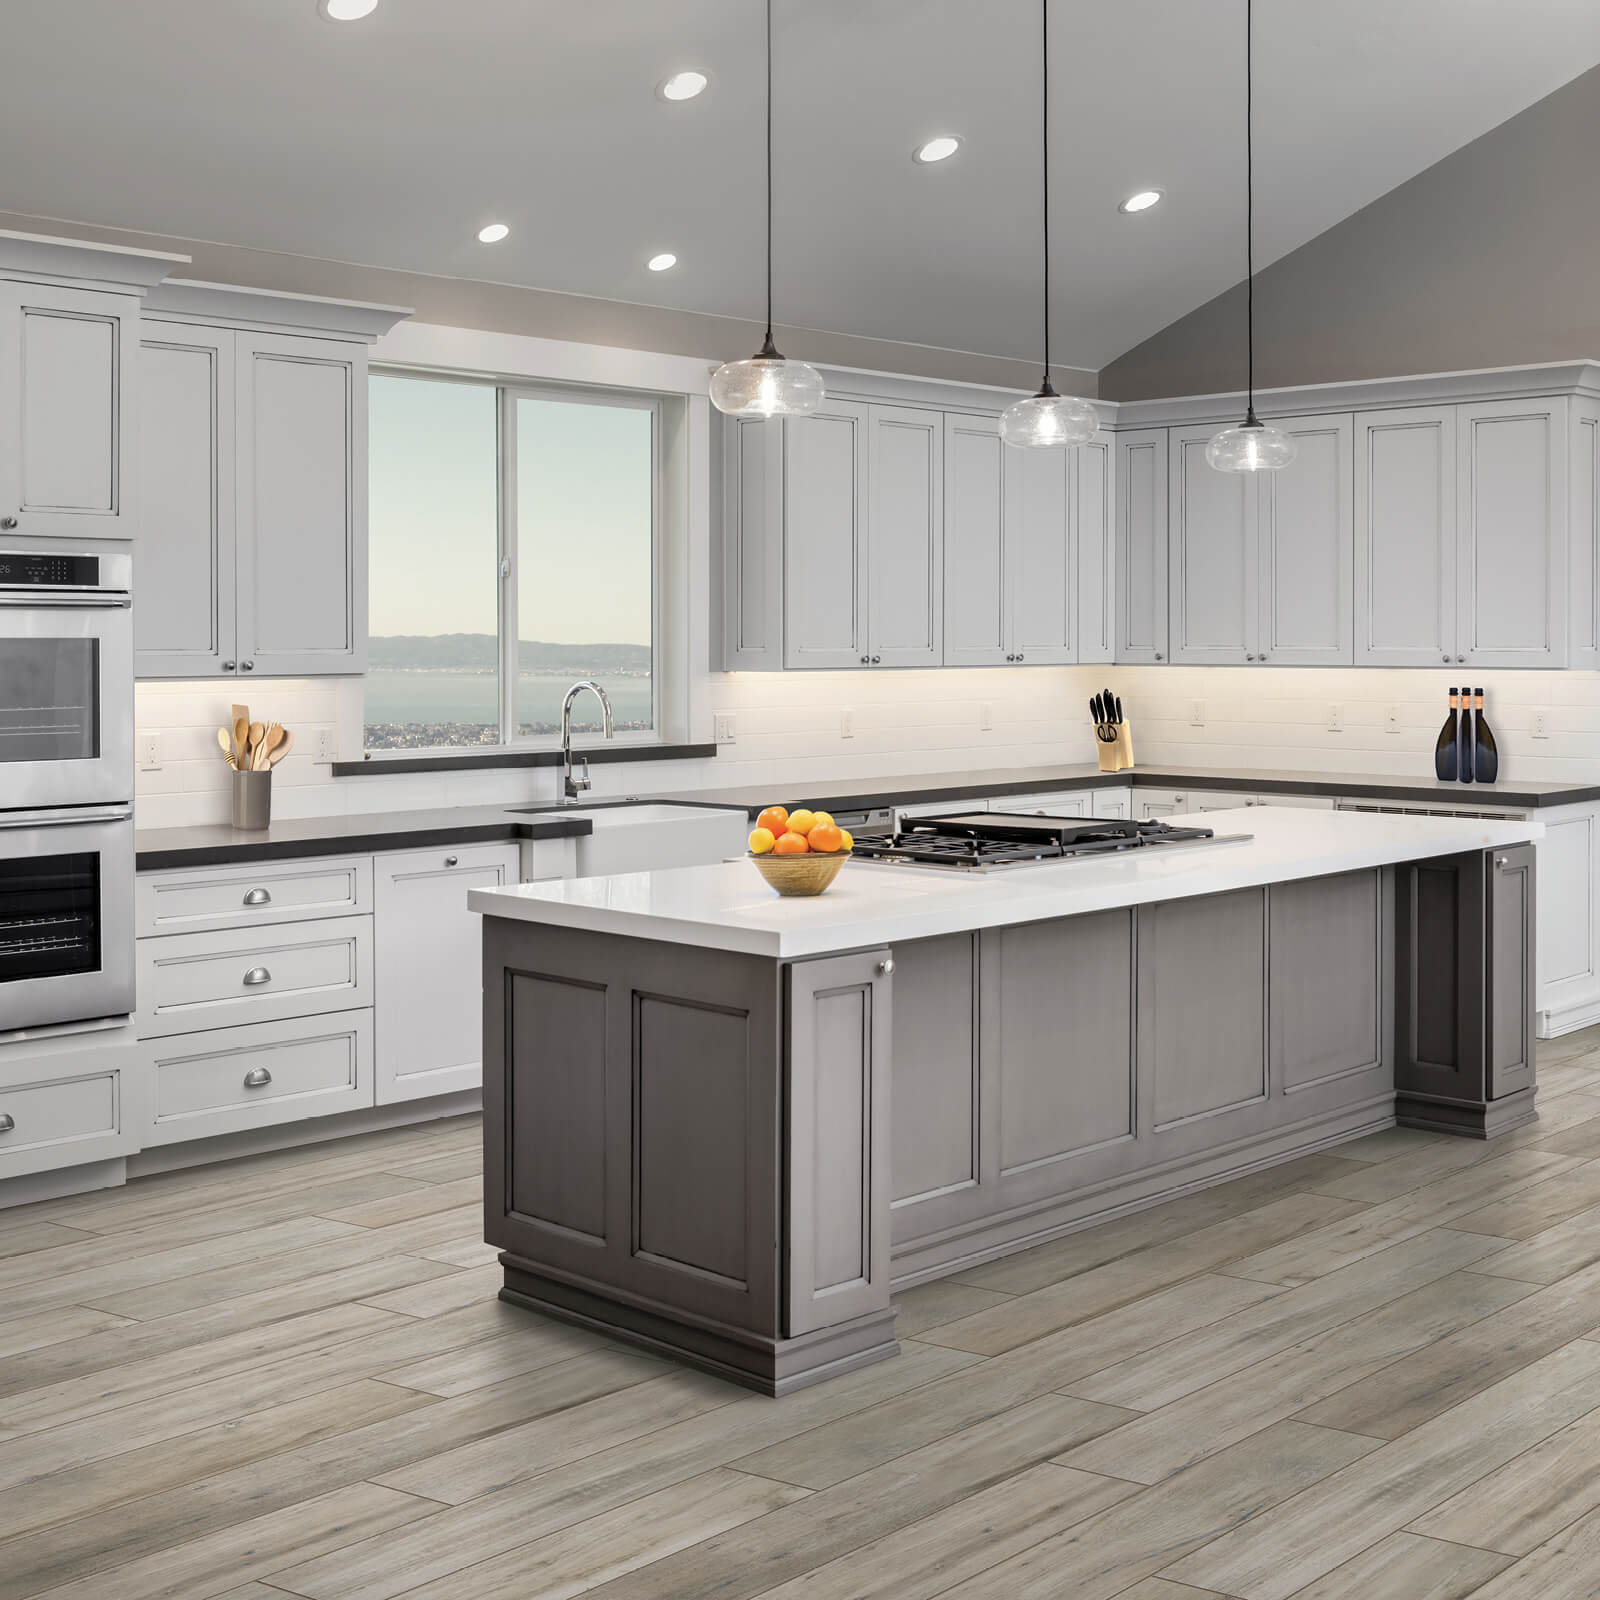 Modern kitchen with updated countertops and flooring | Design Waterville